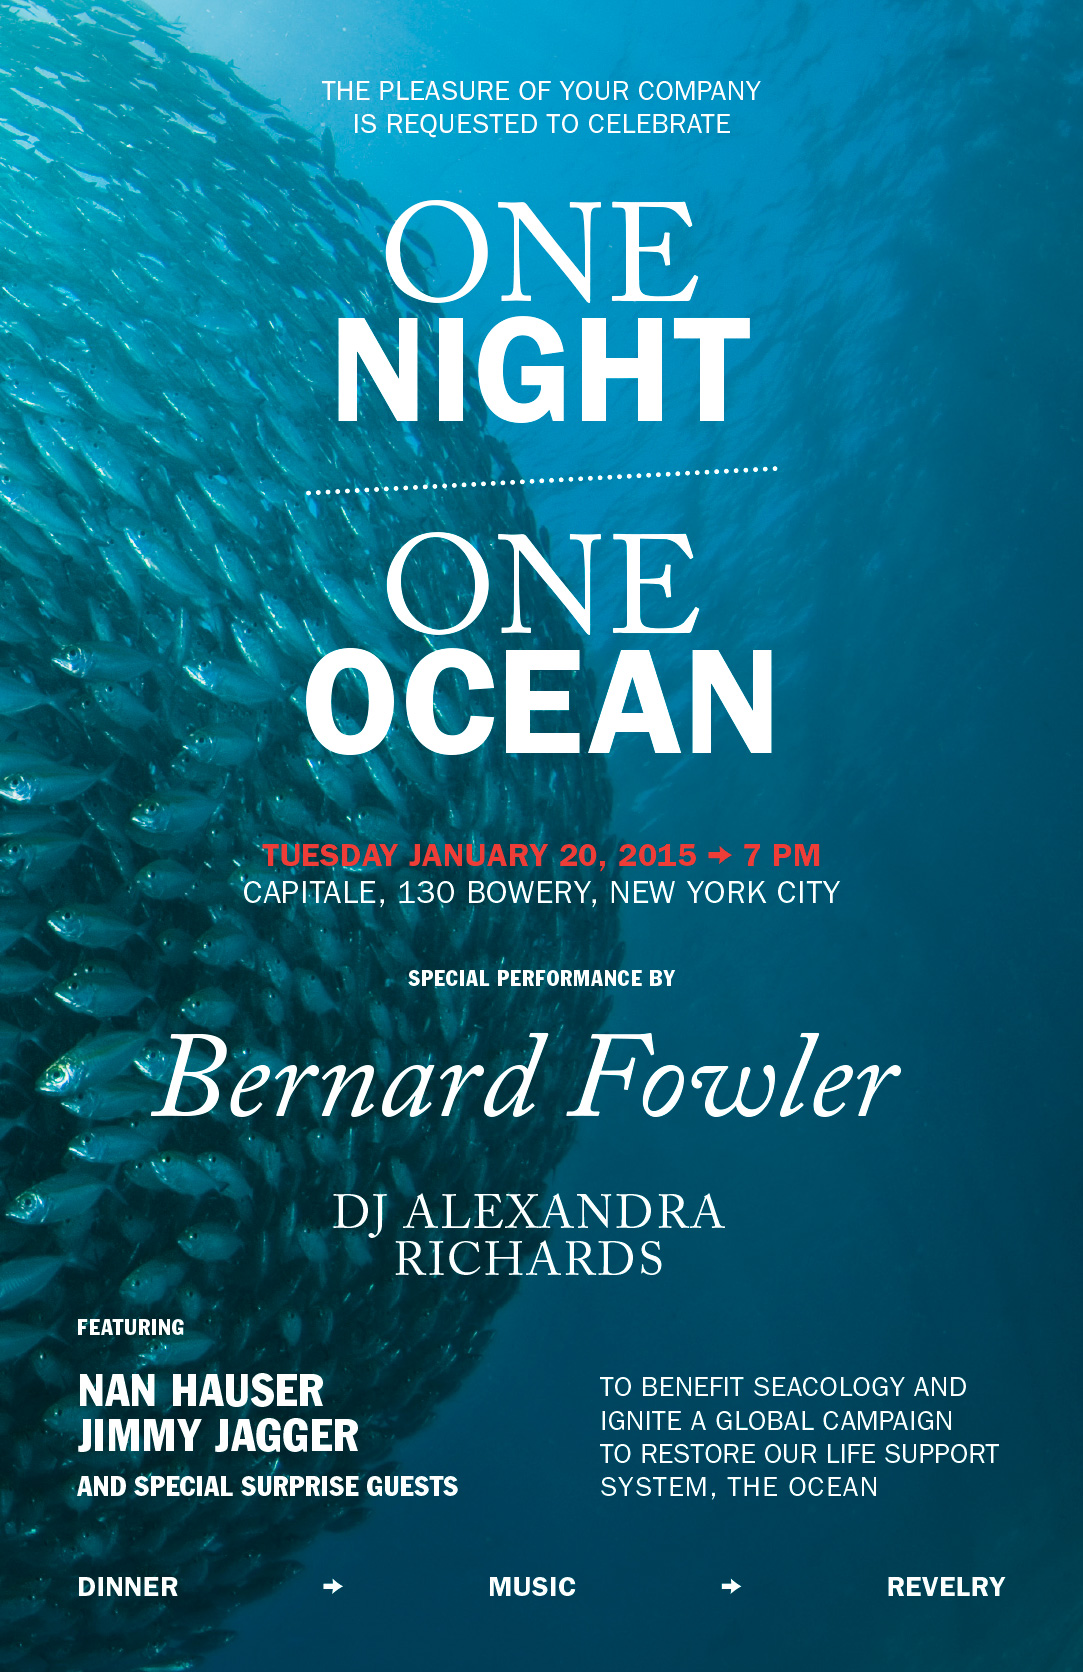 The Ocean Campaign / One Night One Ocean / Poster / Charity event / 2015